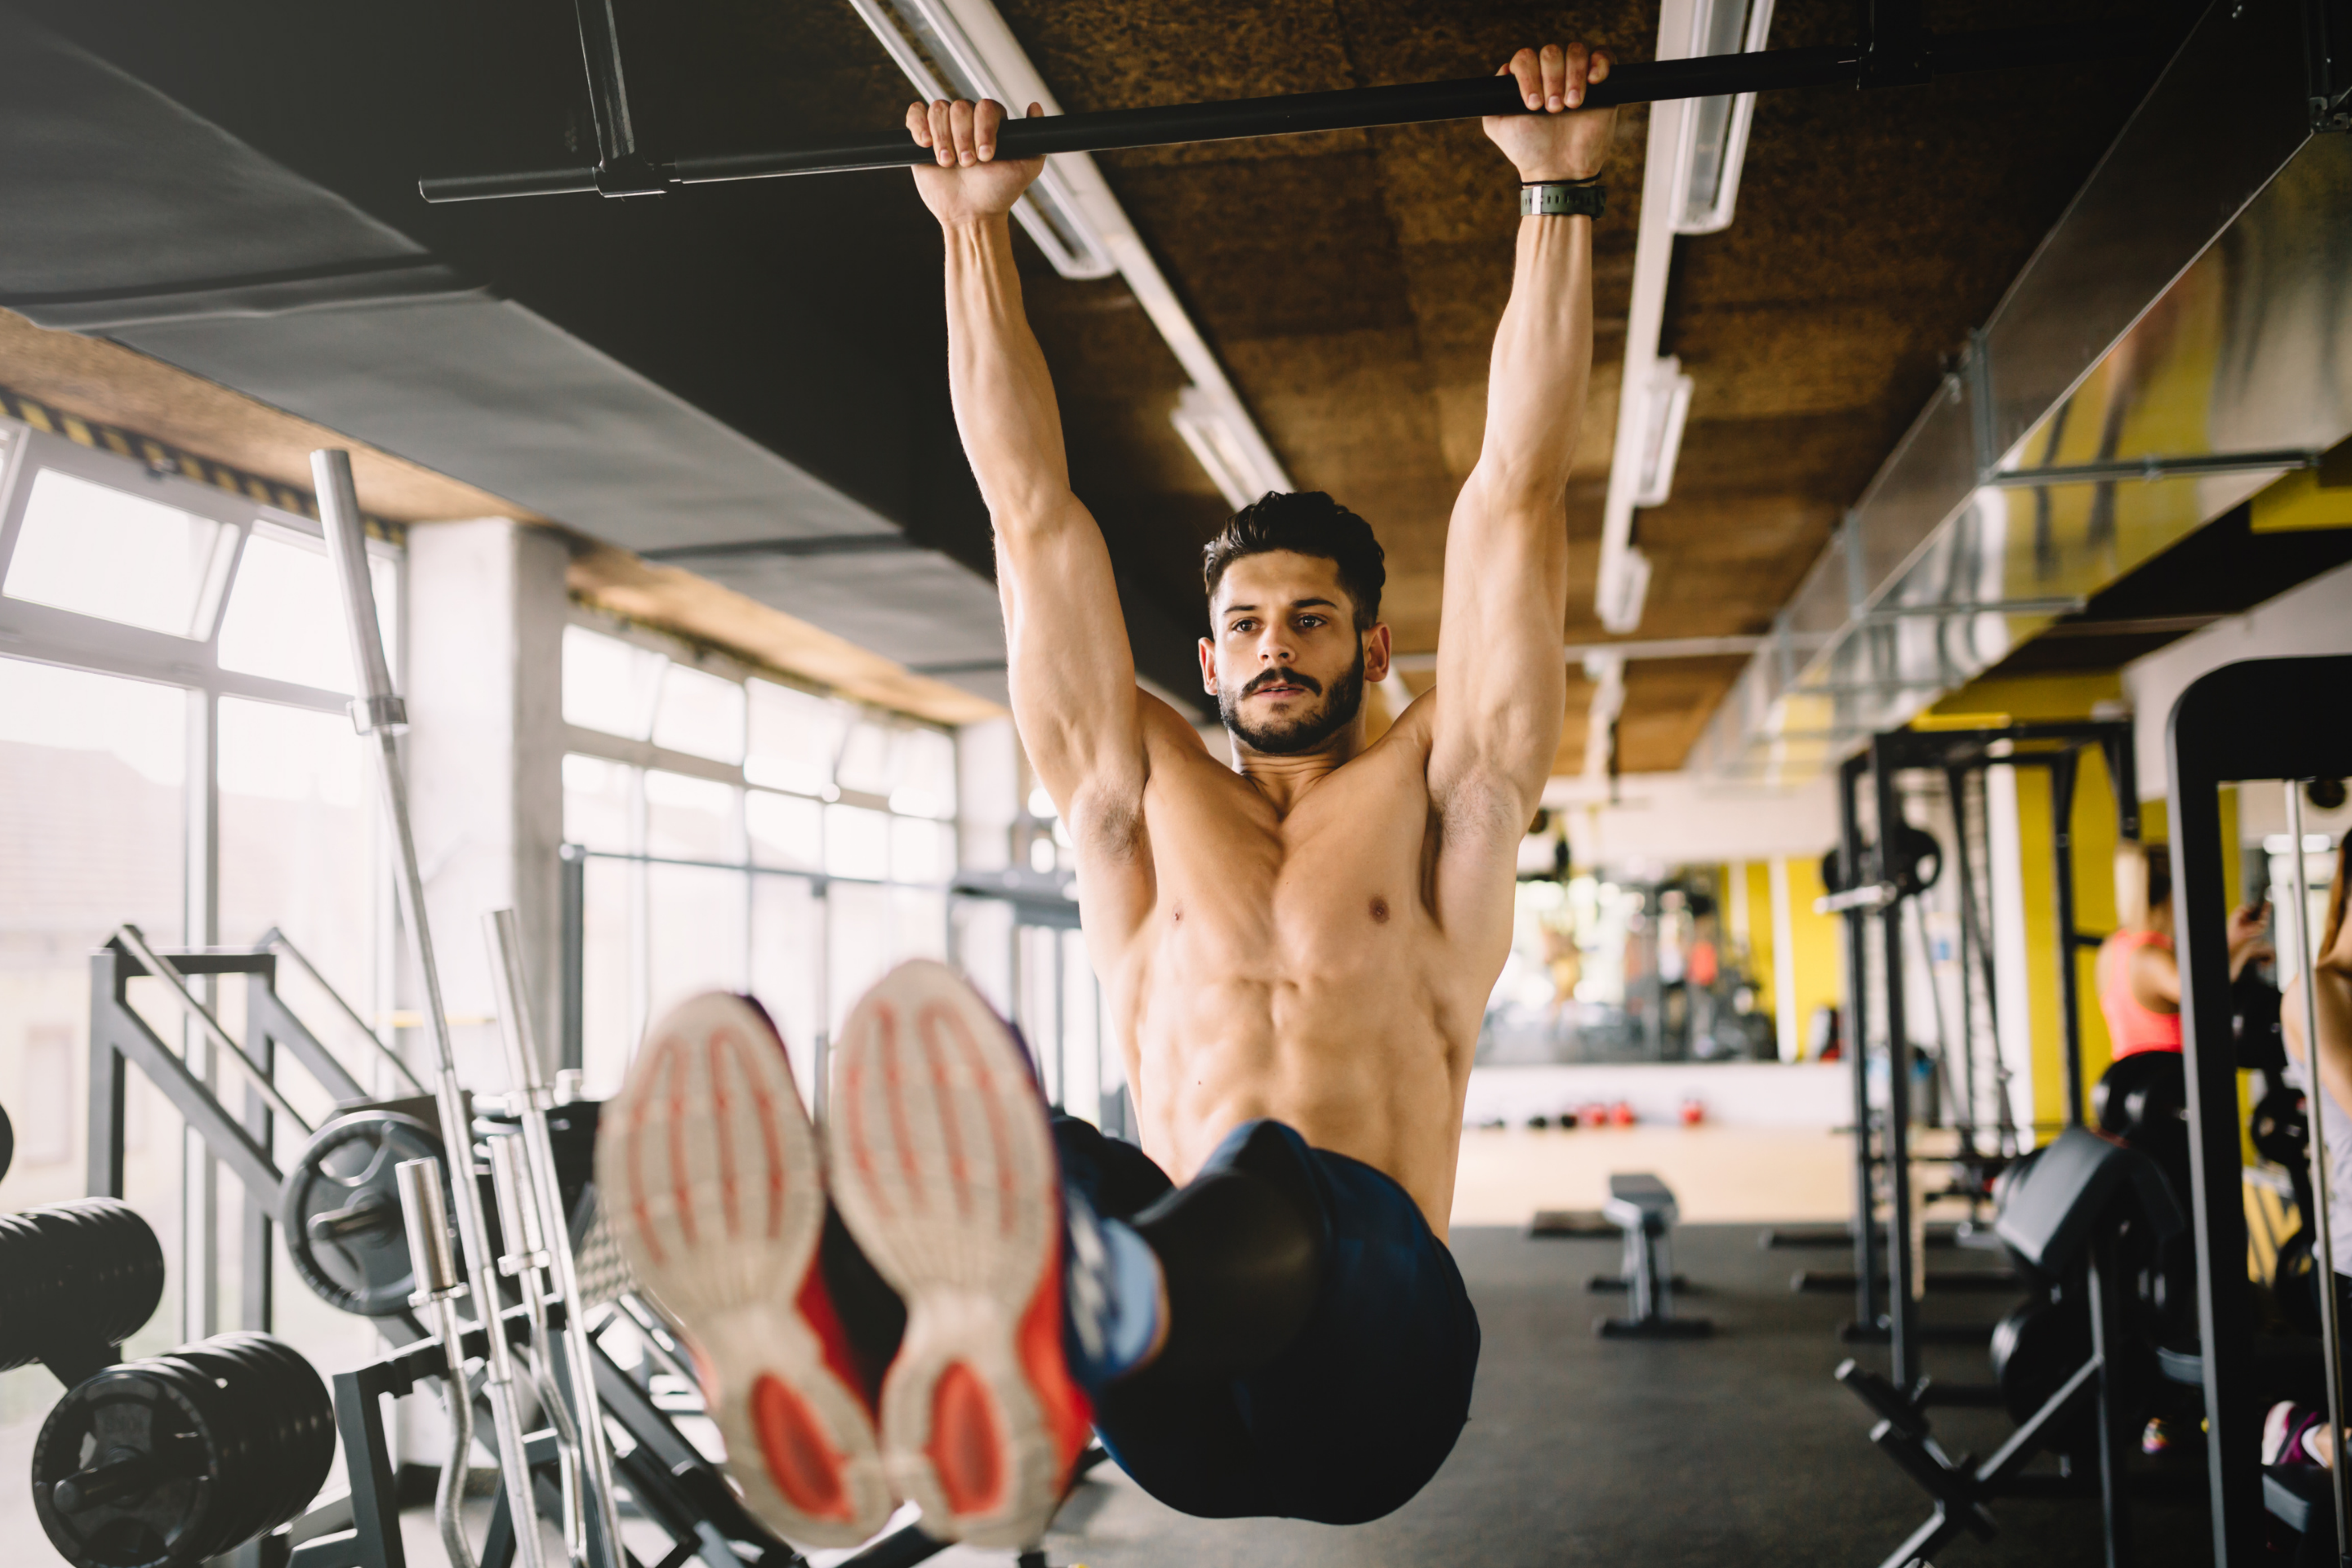 Ab Workouts Vs. Core Training: What's the Difference?